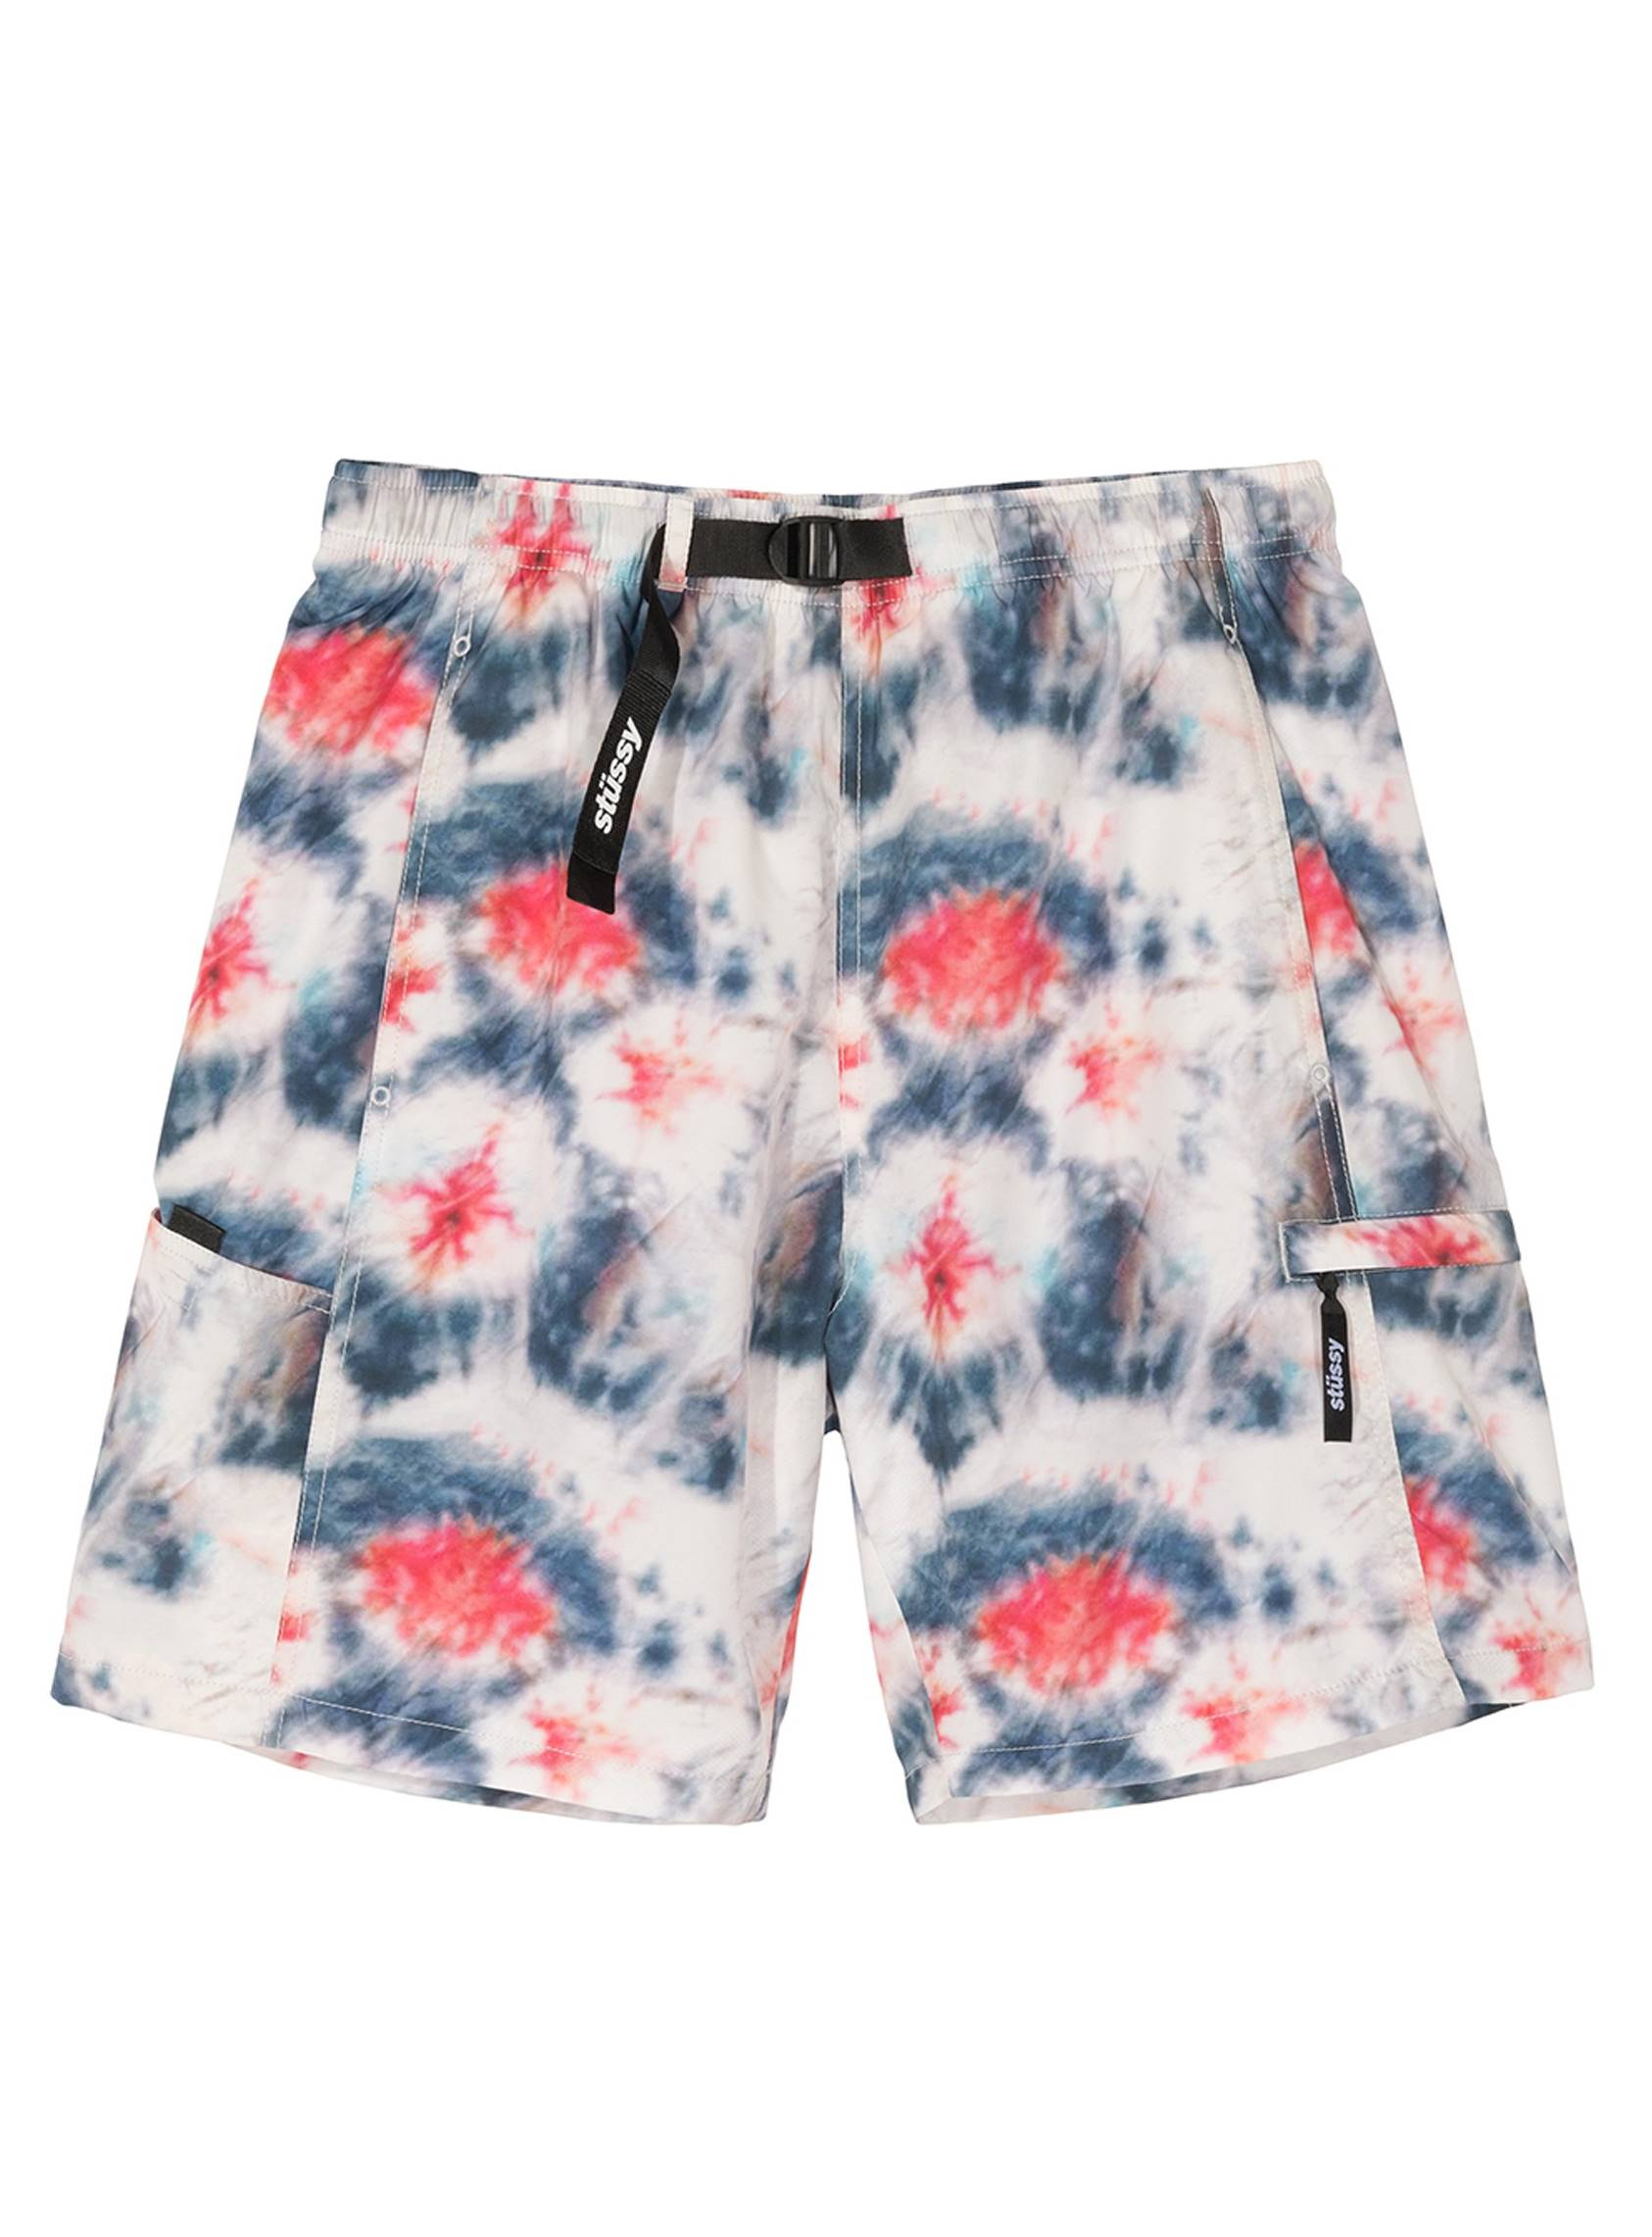 STUSSY 20SS TIE DYE SPORTS SHORT